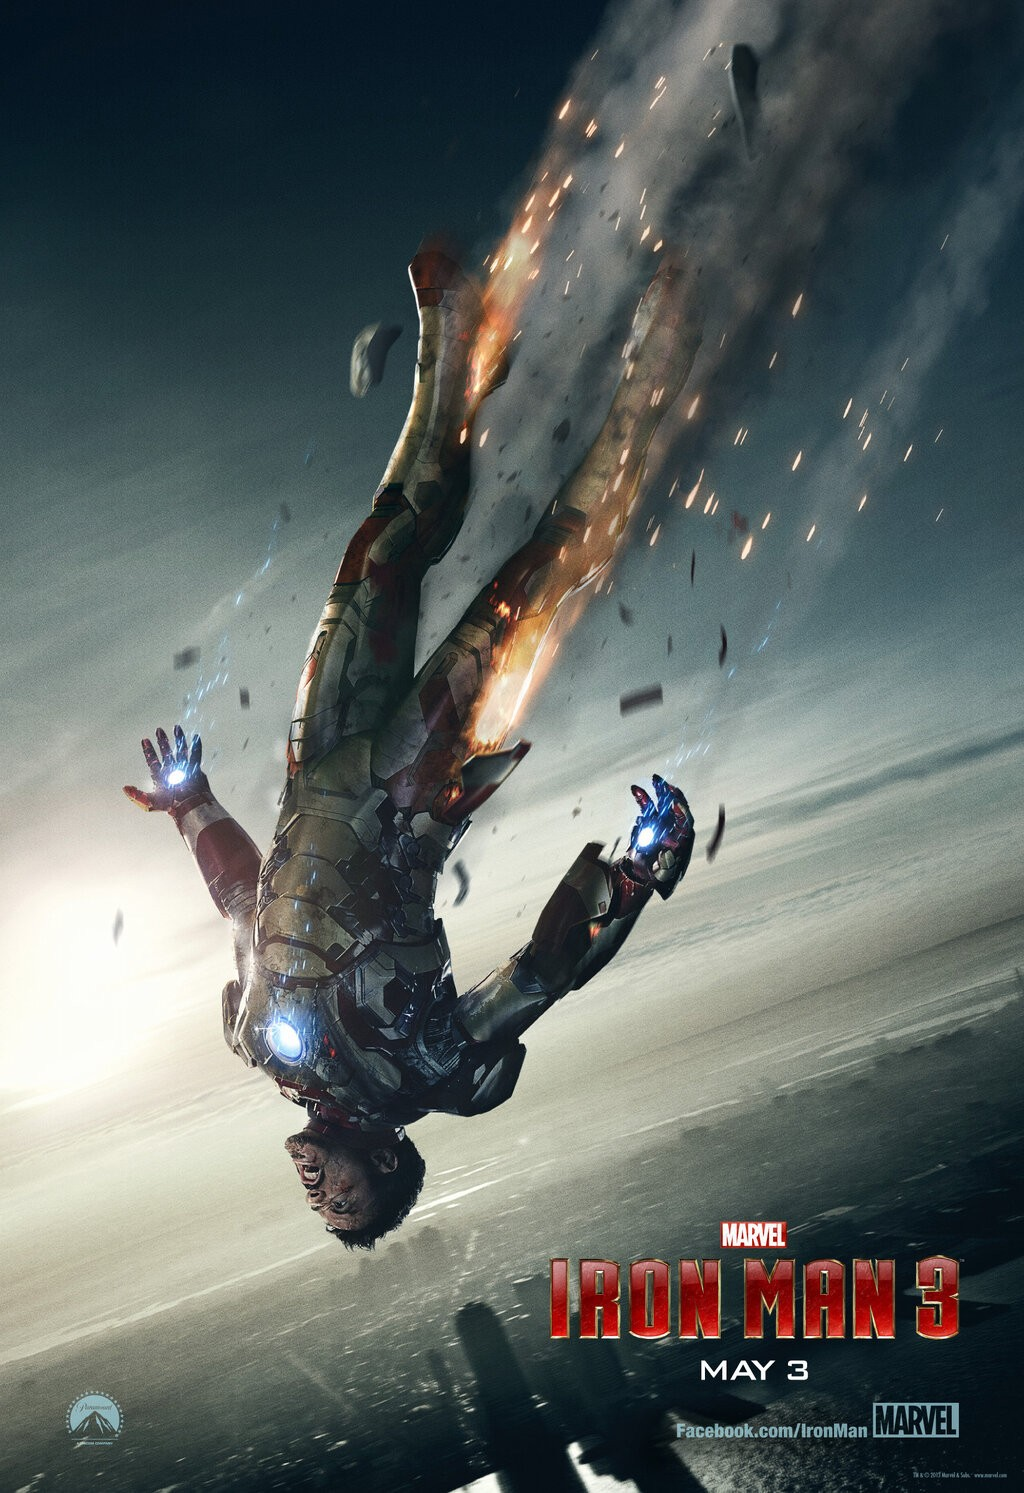 The Blot Says New Iron Man 3 Teaser Movie Poster